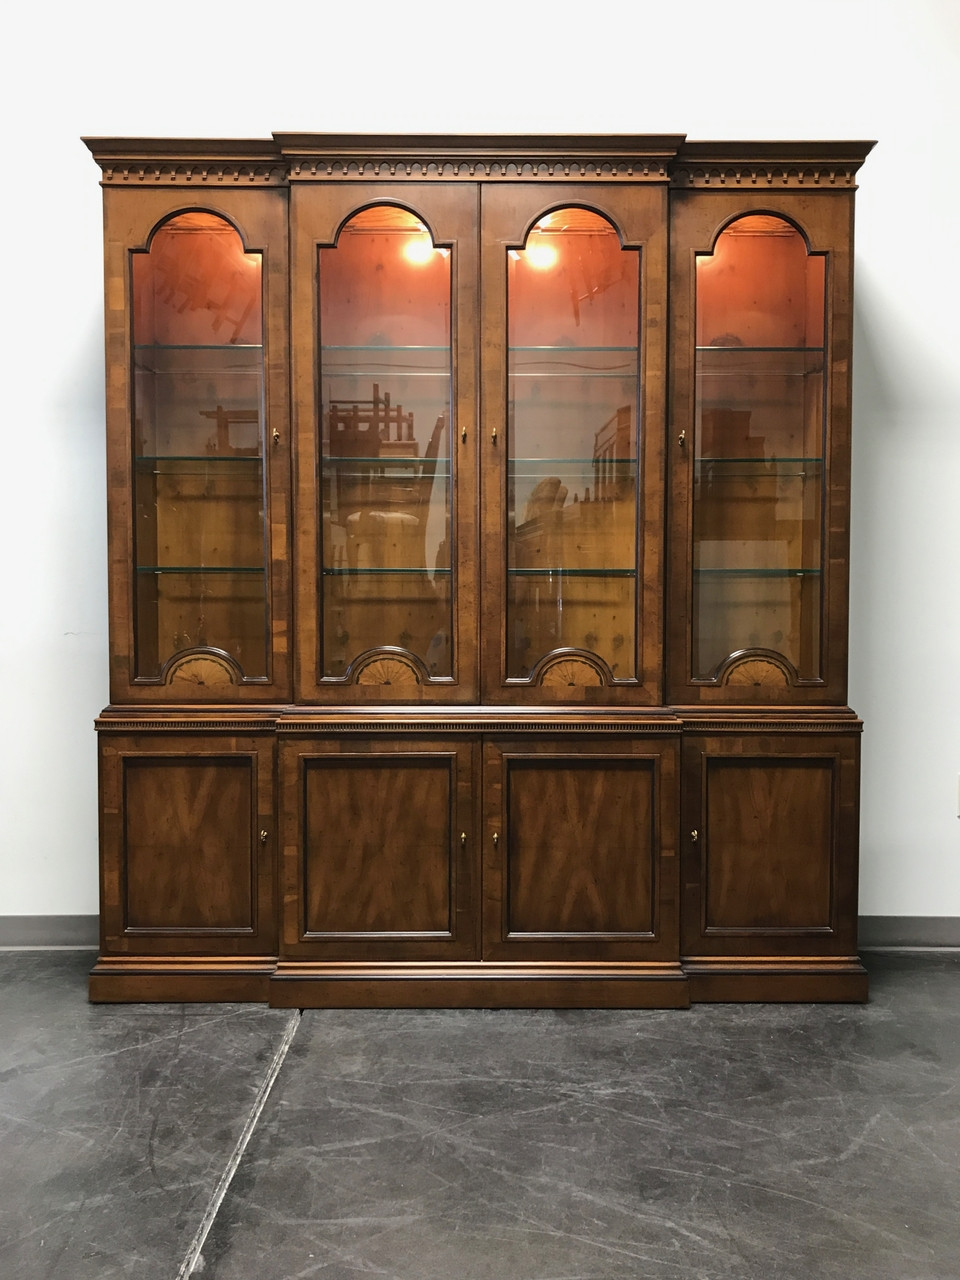 Sold out henredon 18th century collection inlaid yew wood breakfront china cabinet